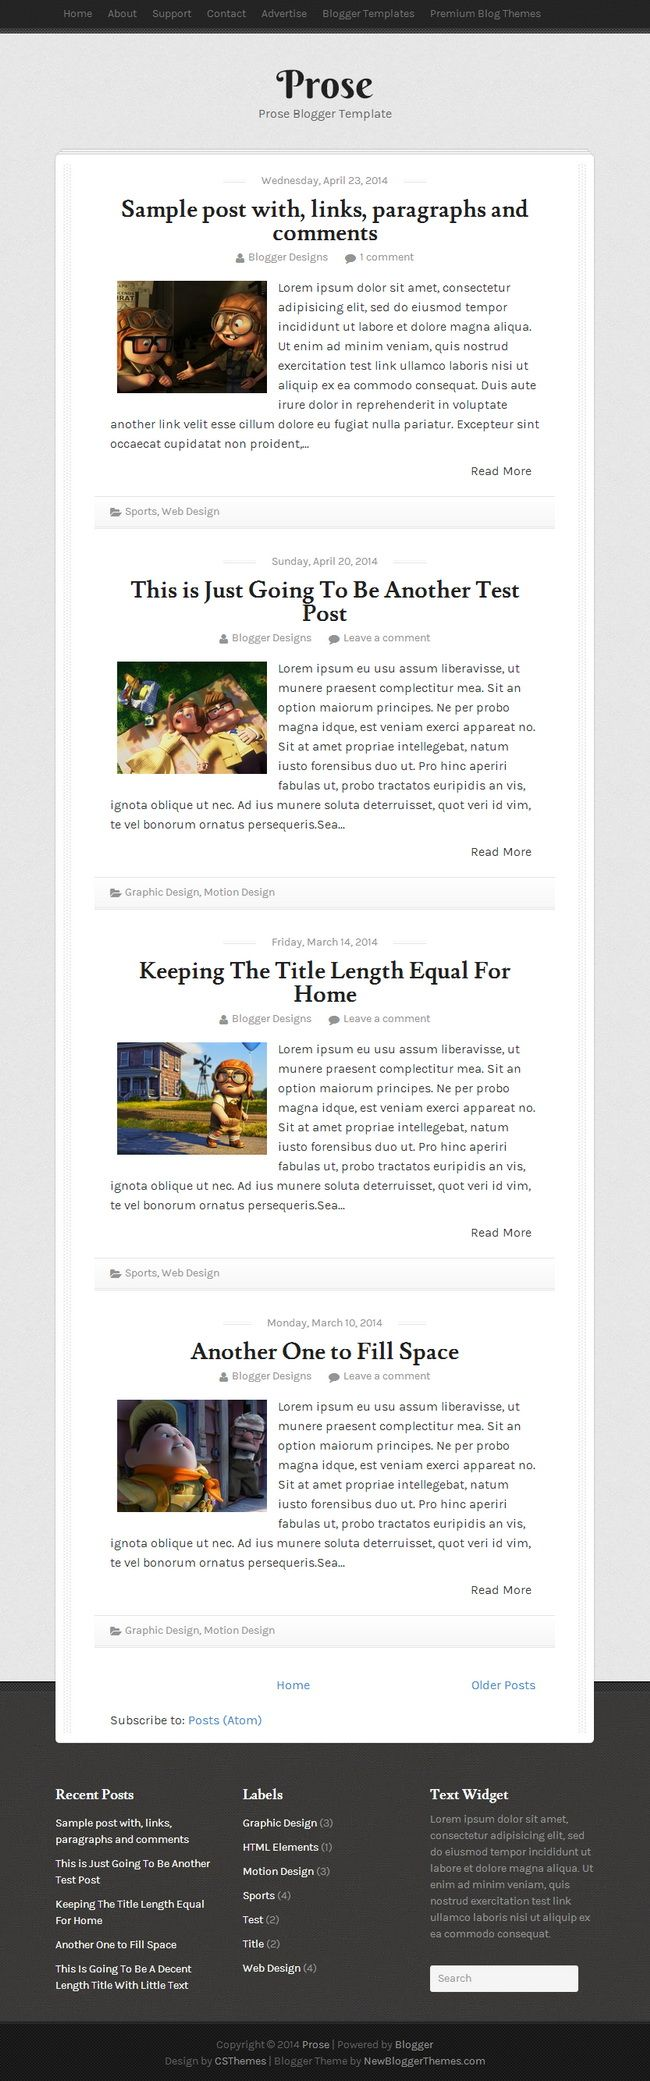 Prose Blogger Template:  Prose Blogger Template is a simple yet elegant single column Blogger template, suitable for personal bloggers. Prose Blogger theme looks great on every devices with responsive design.  http://newbloggerthemes.com/prose-blogger-template/